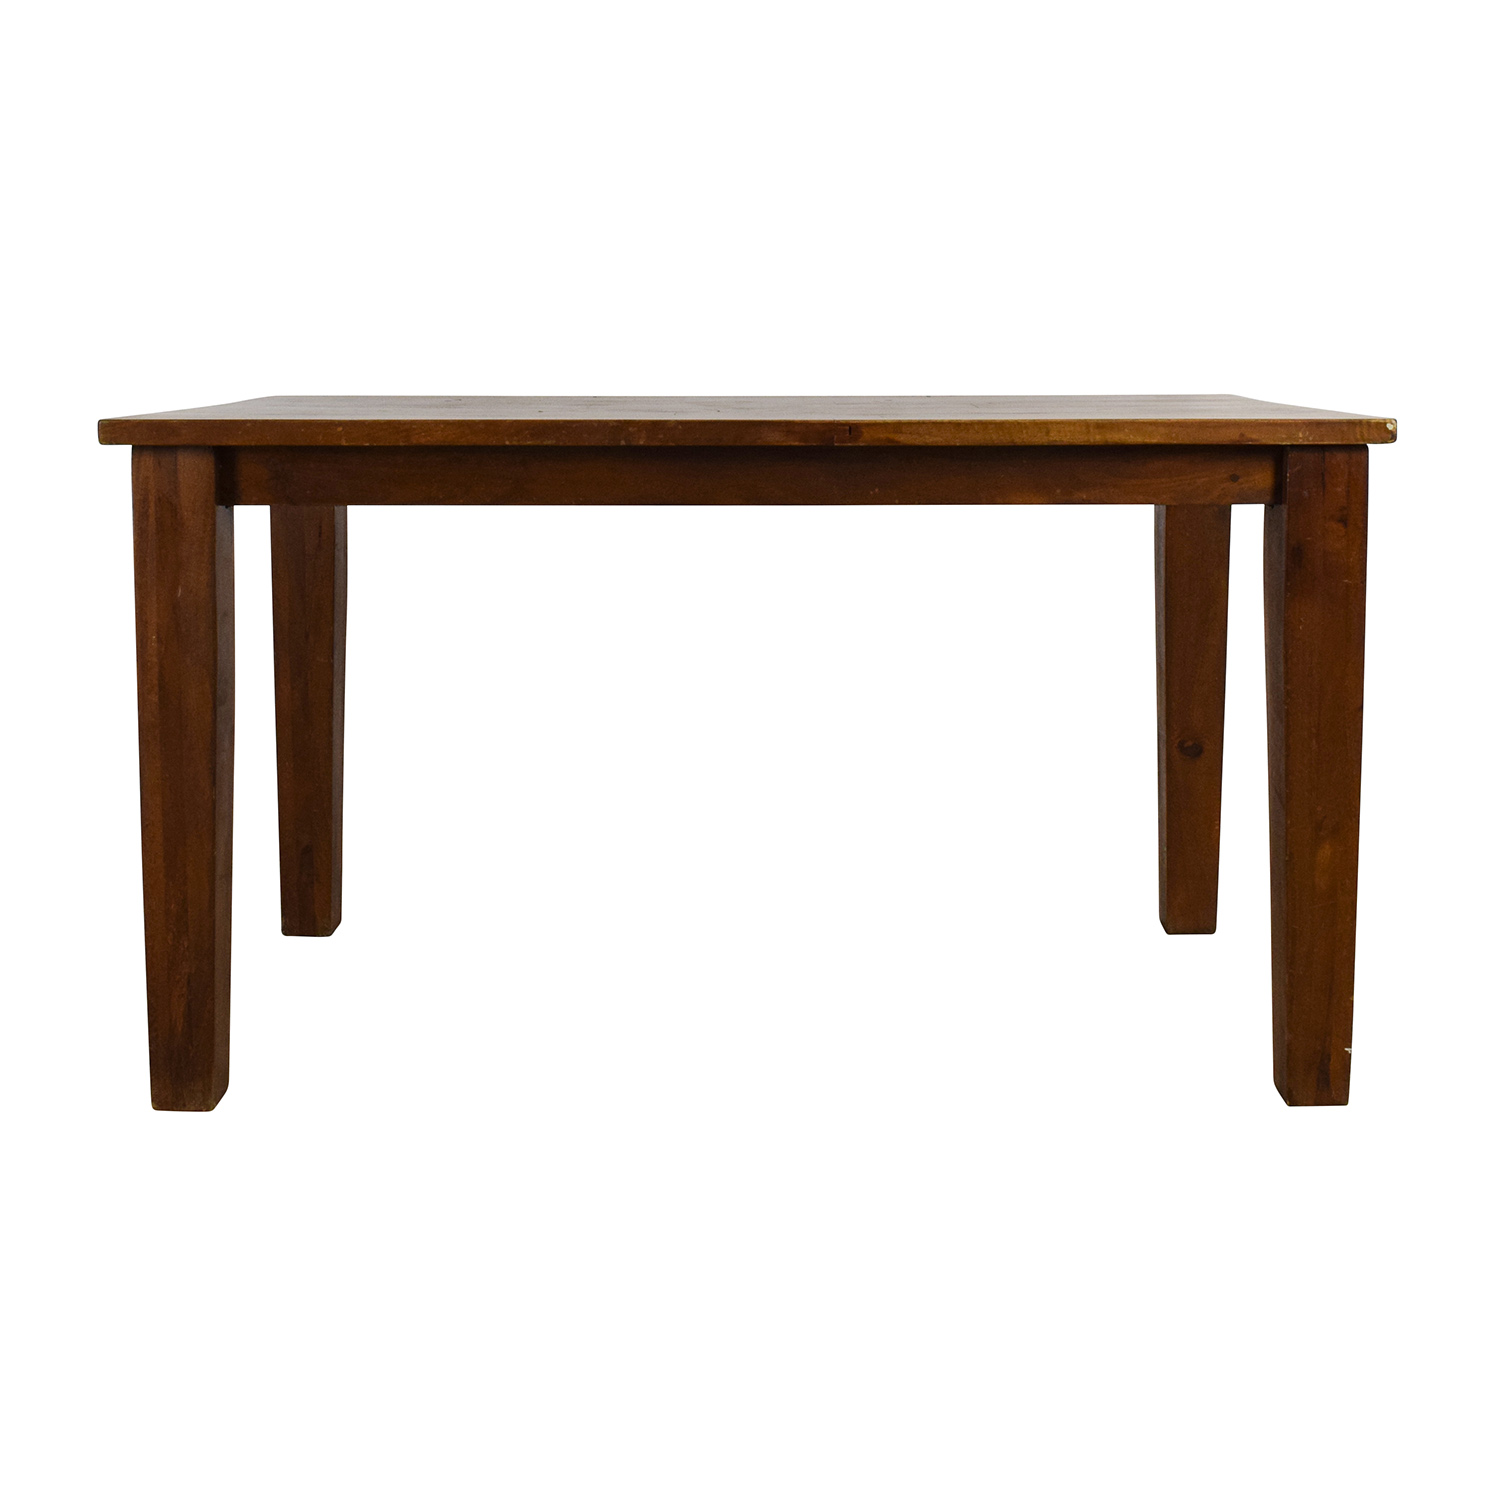 Sensational 71 Off West Elm West Elm Indian Rosewood Dining Table Tables Beutiful Home Inspiration Aditmahrainfo